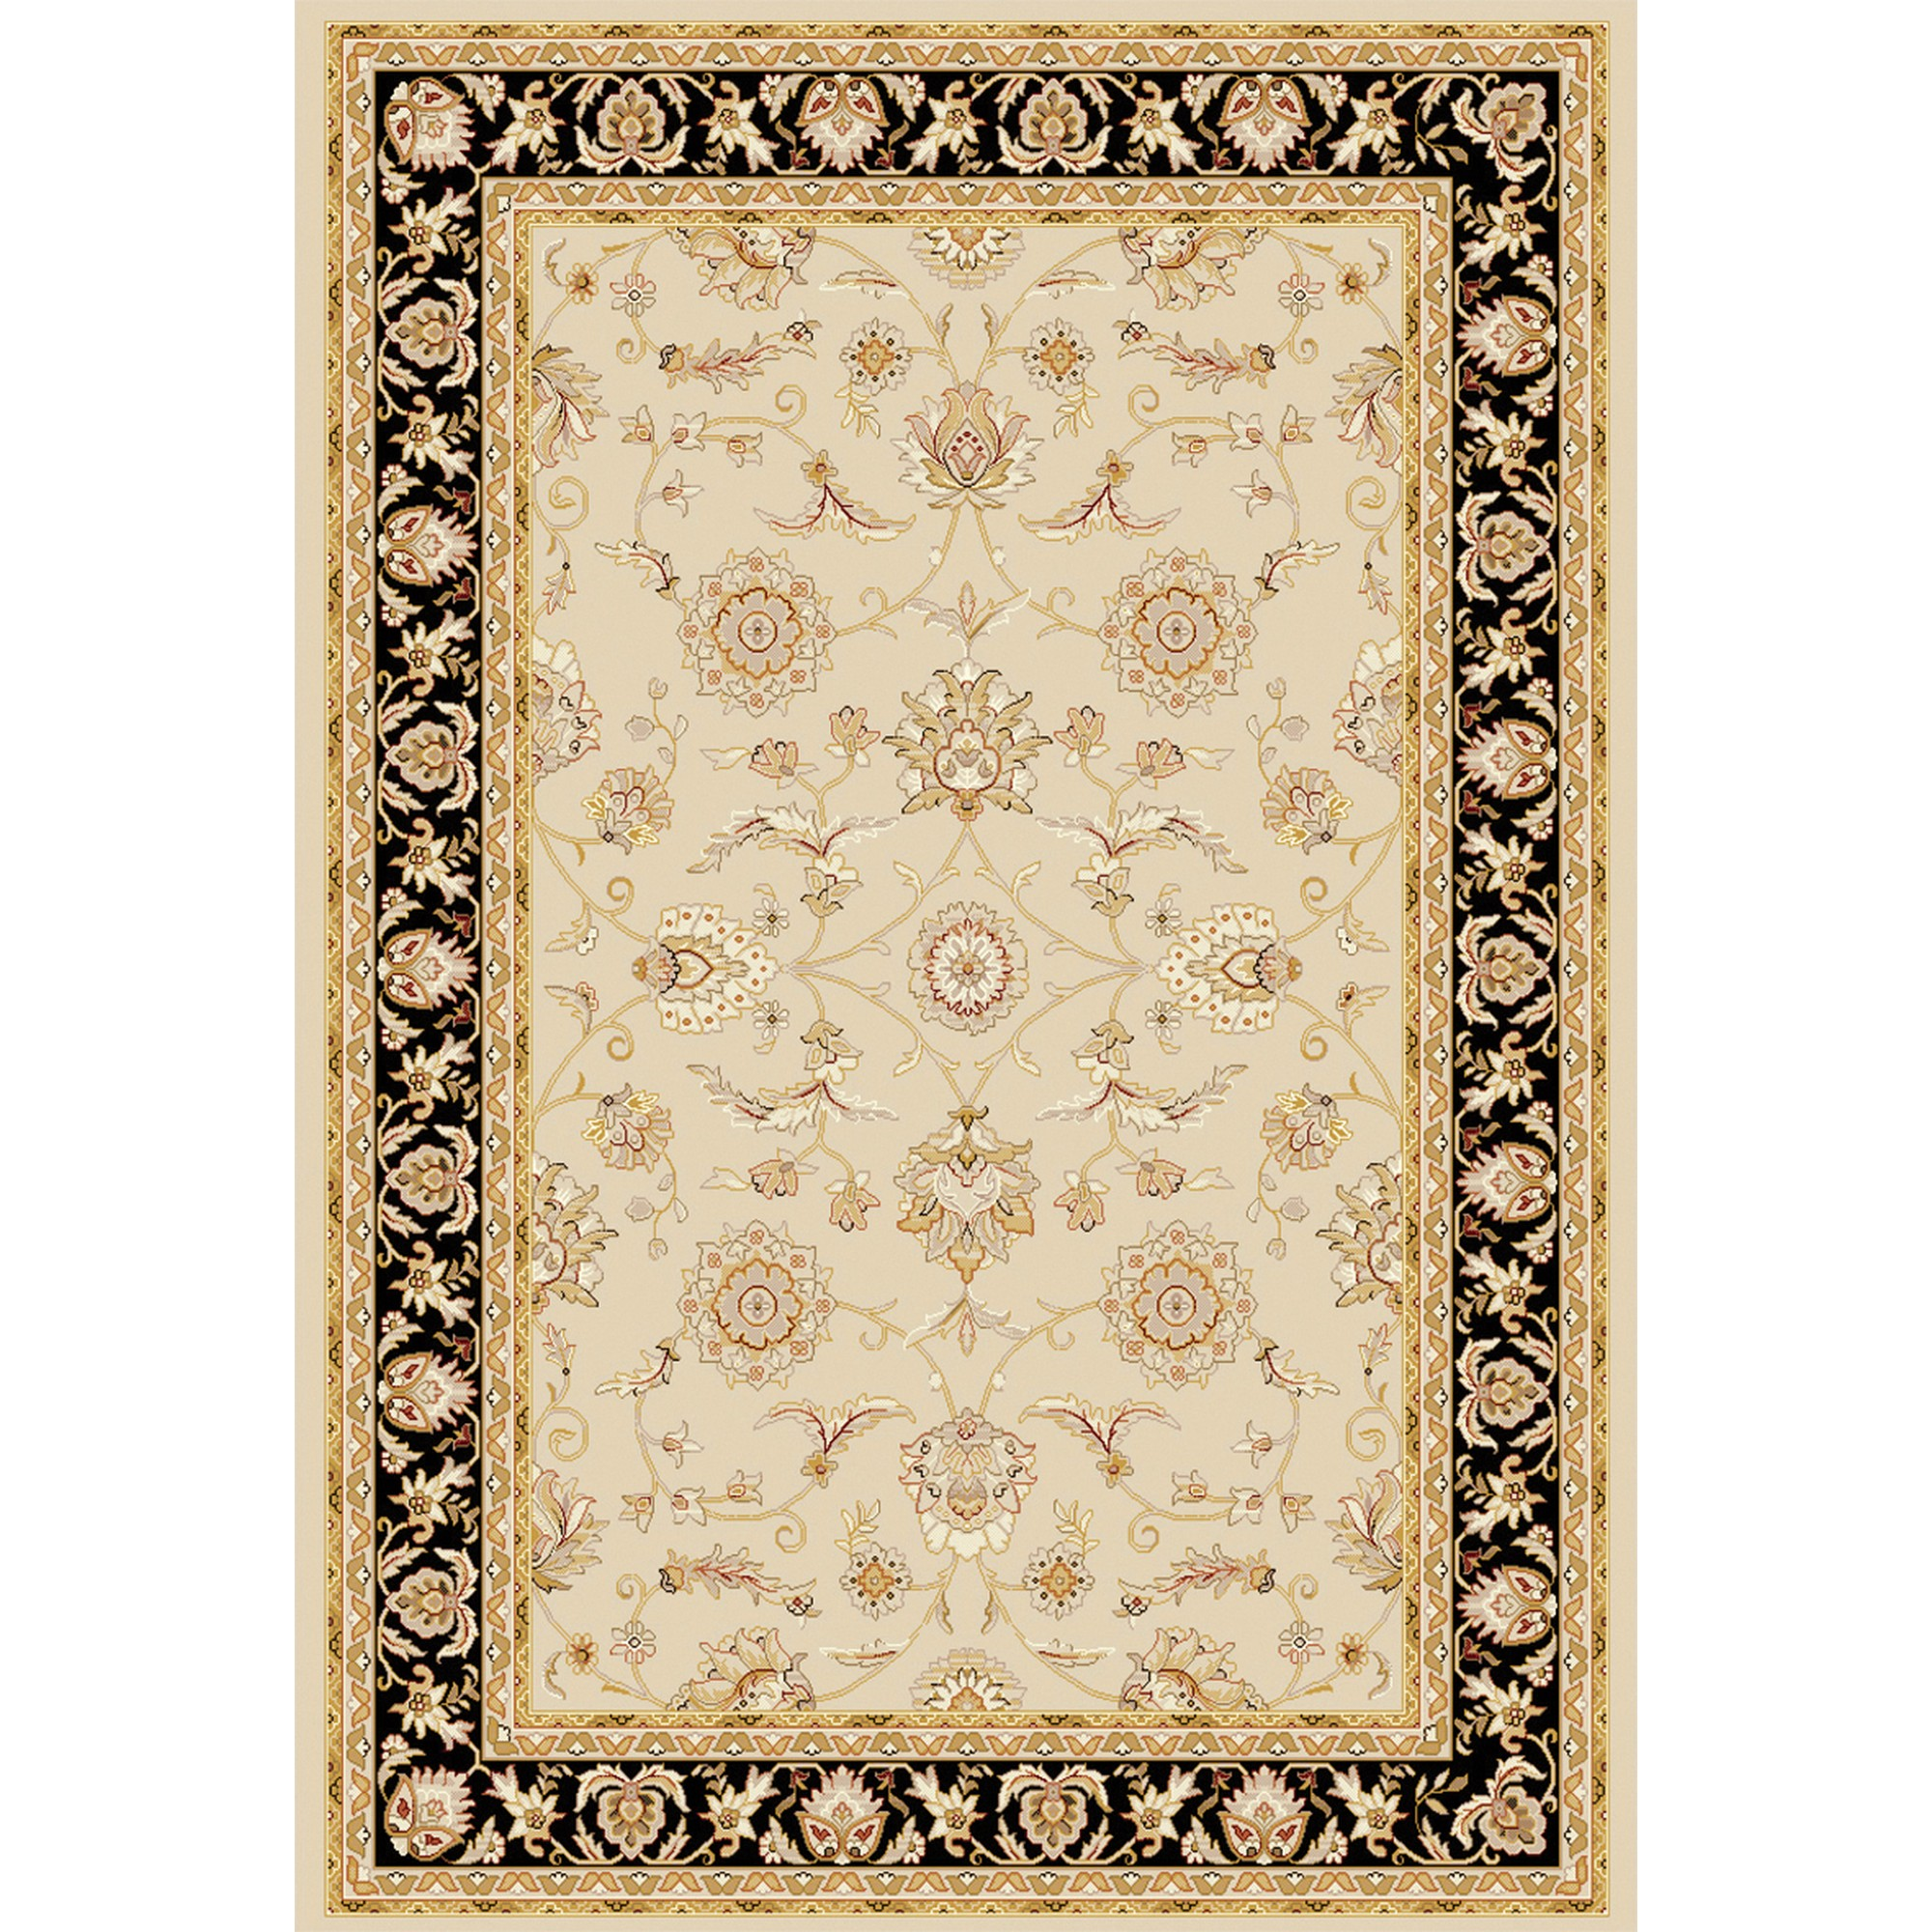 Viscount Rugs V53 65115 191 Cream Black